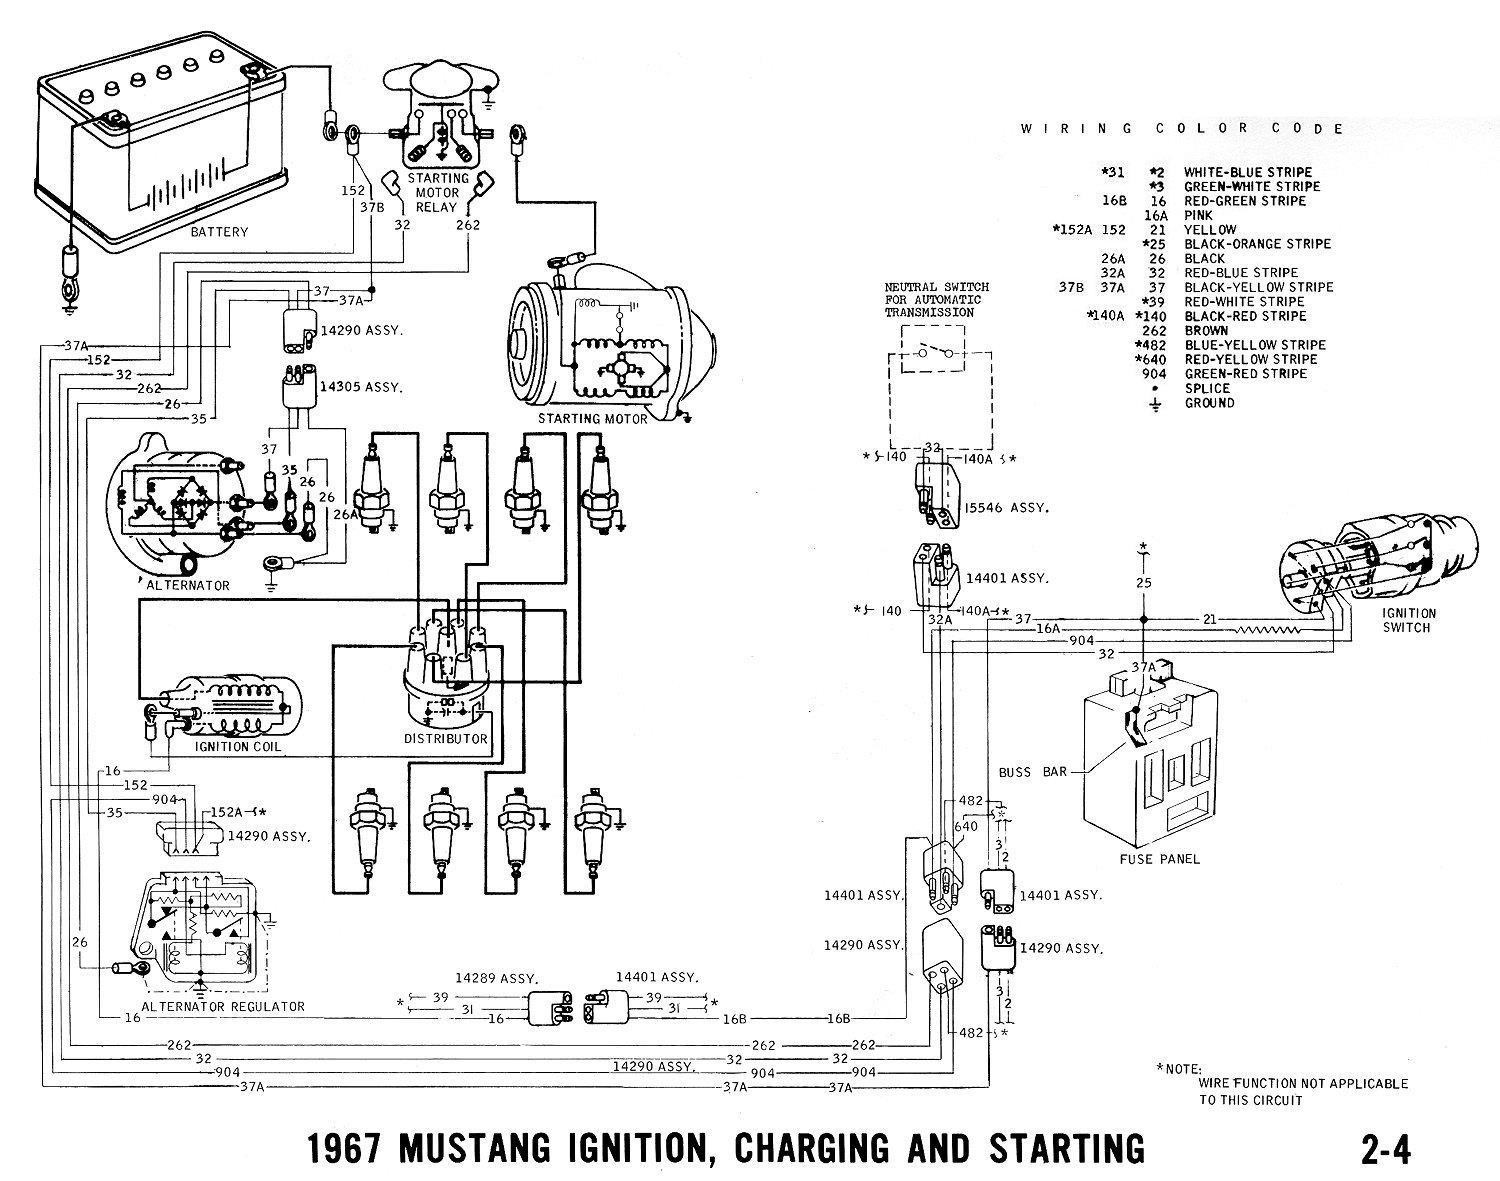 hight resolution of internal regulator alternator wiring besides 1965 ford falcon wiring 1967 ford mustang alternator wiring diagram wiring